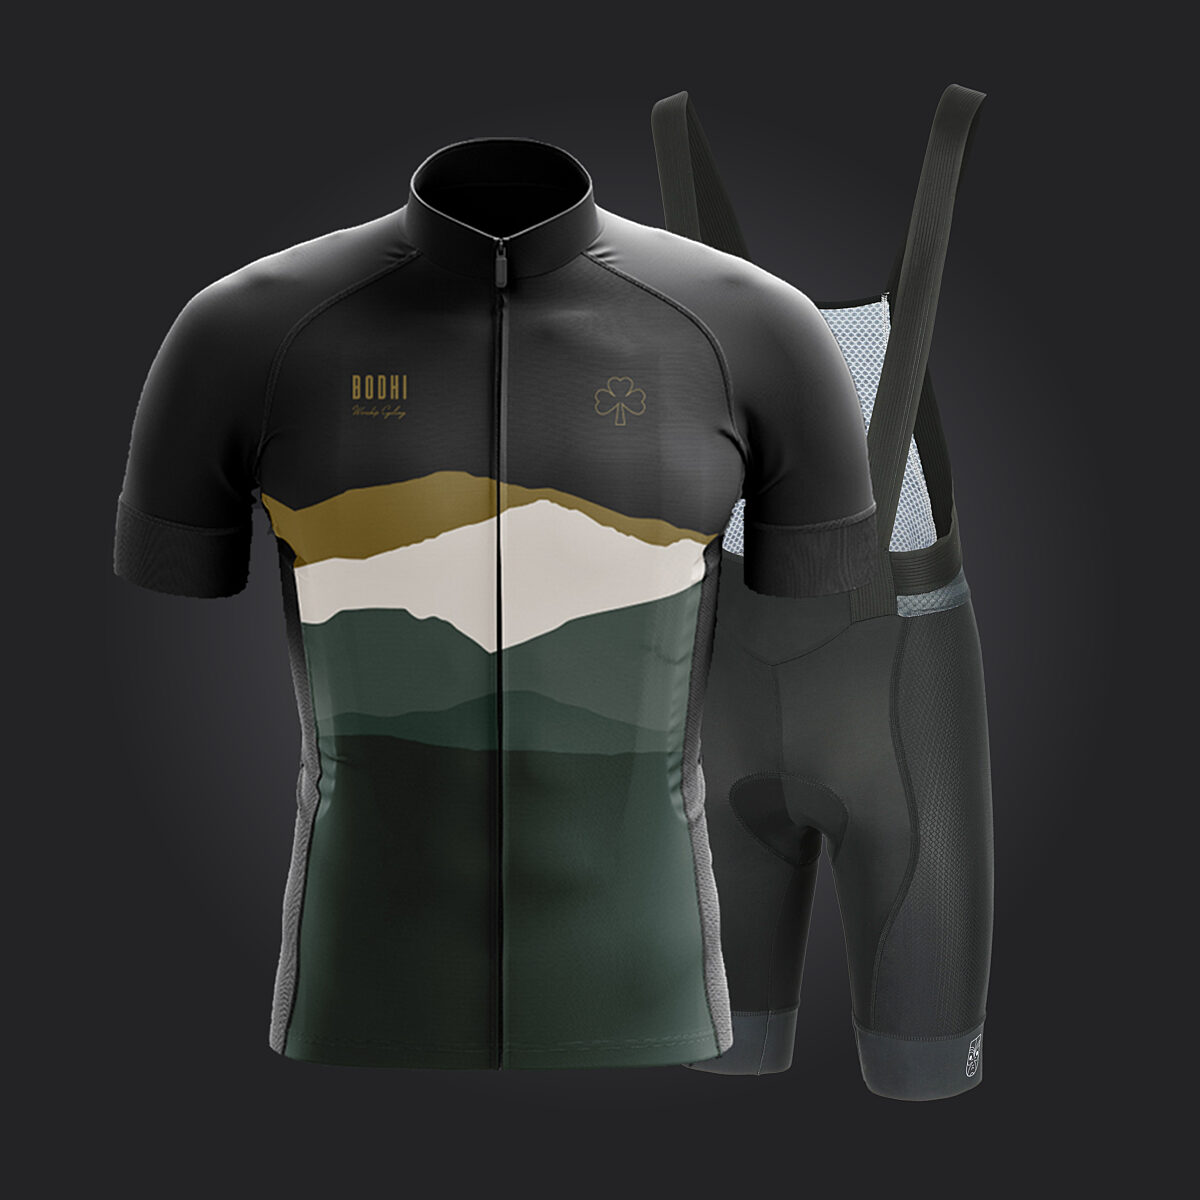 Bodhi cycling collection duo pack